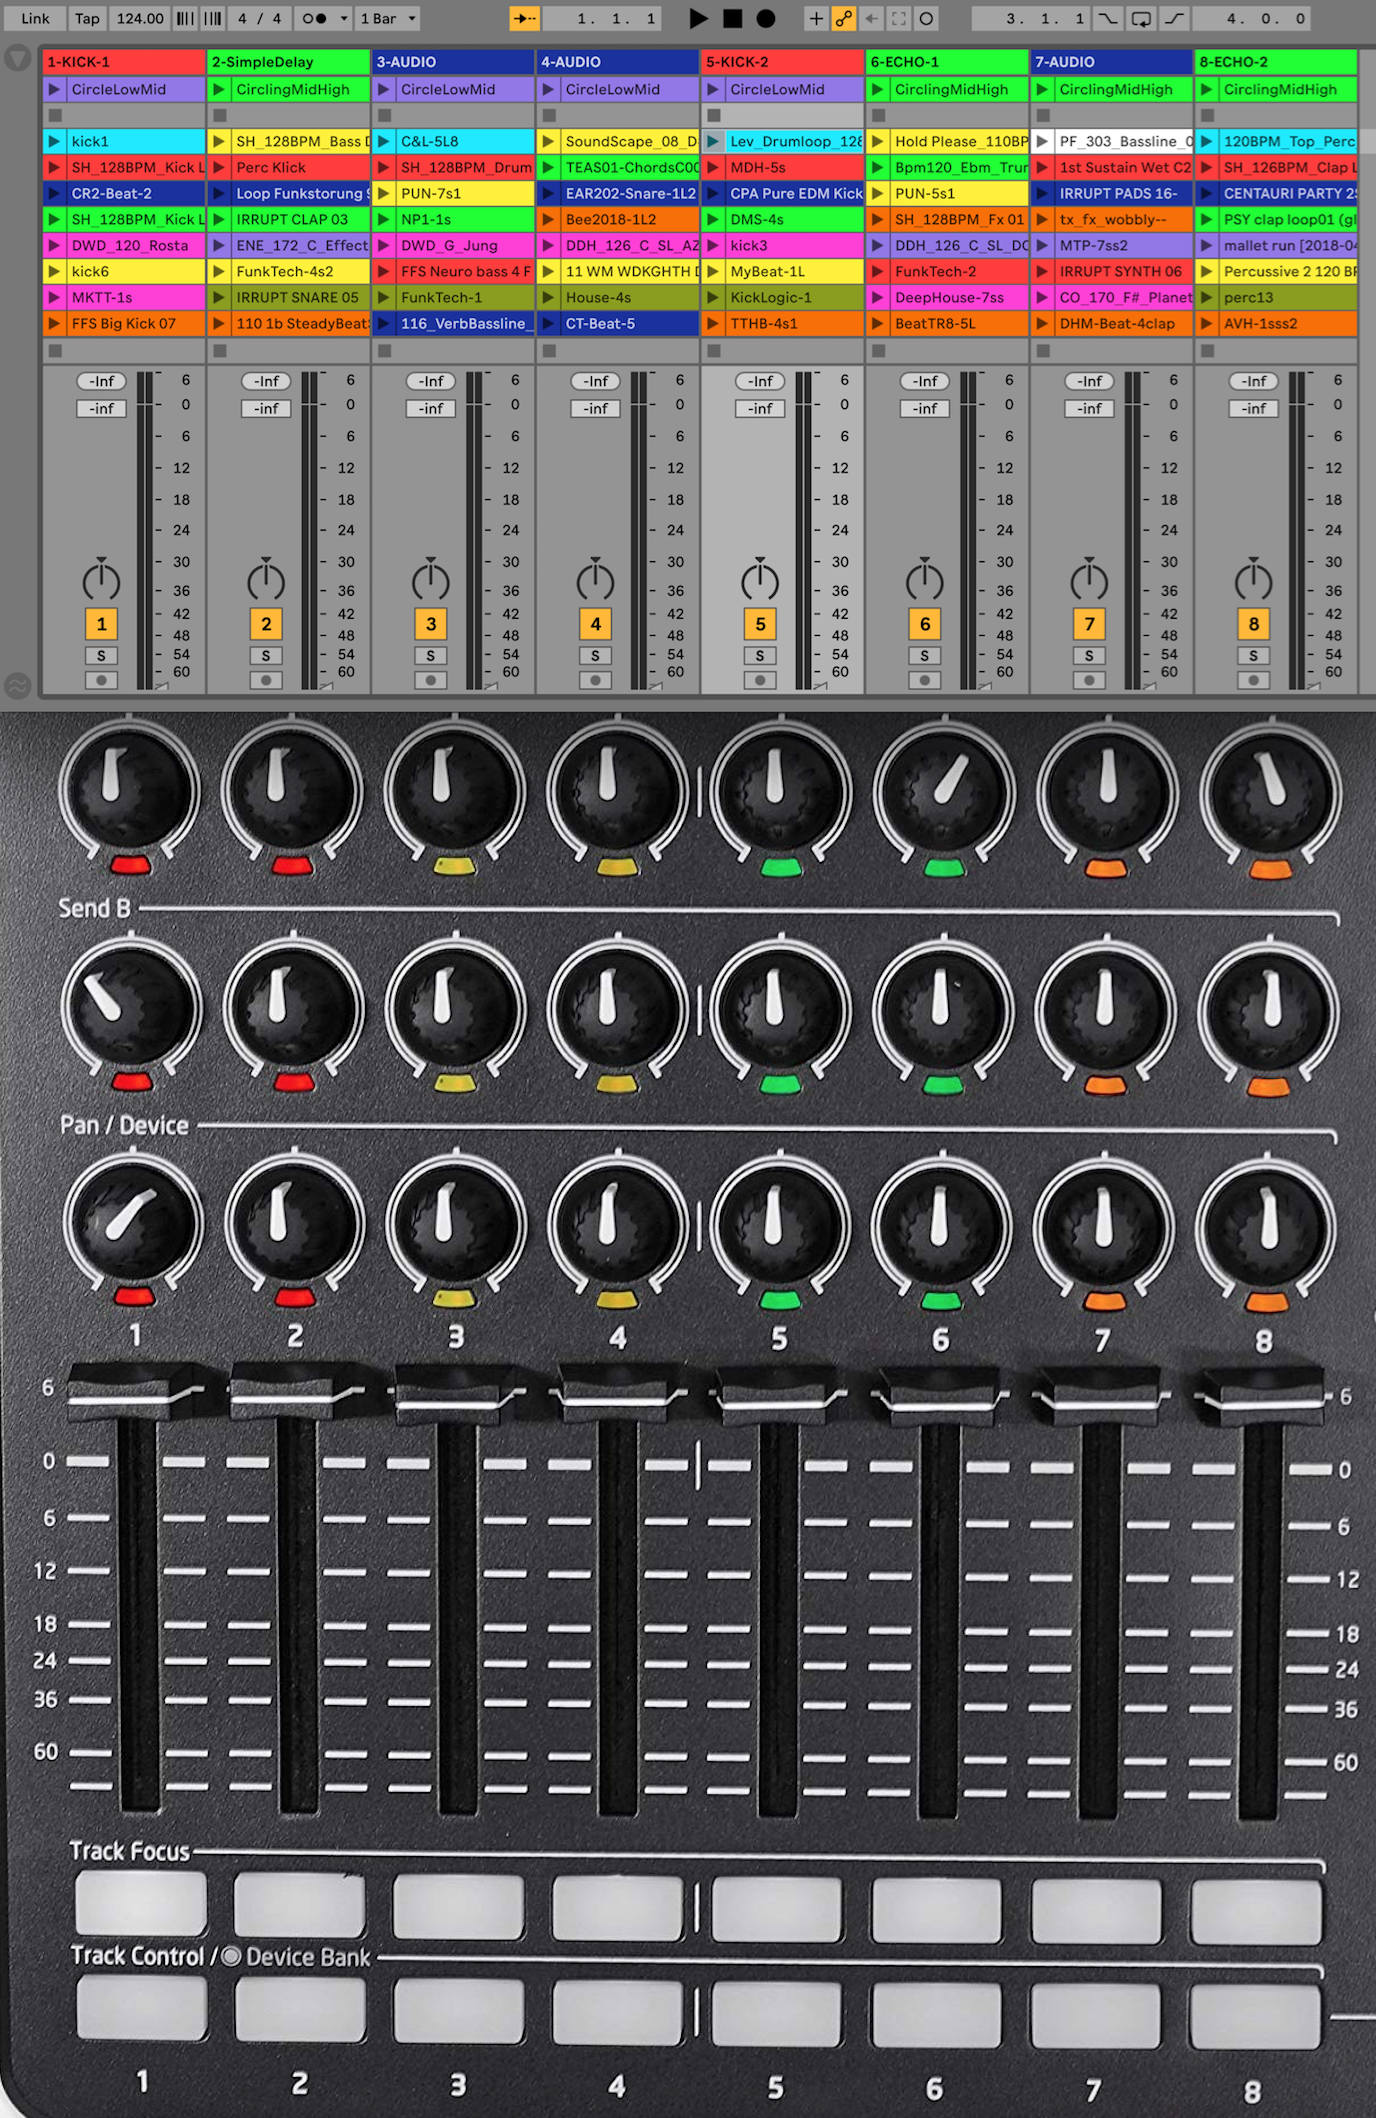 Figure 29 – Ableton session of 8 audio tracks template with the Novation Controller, 2019.